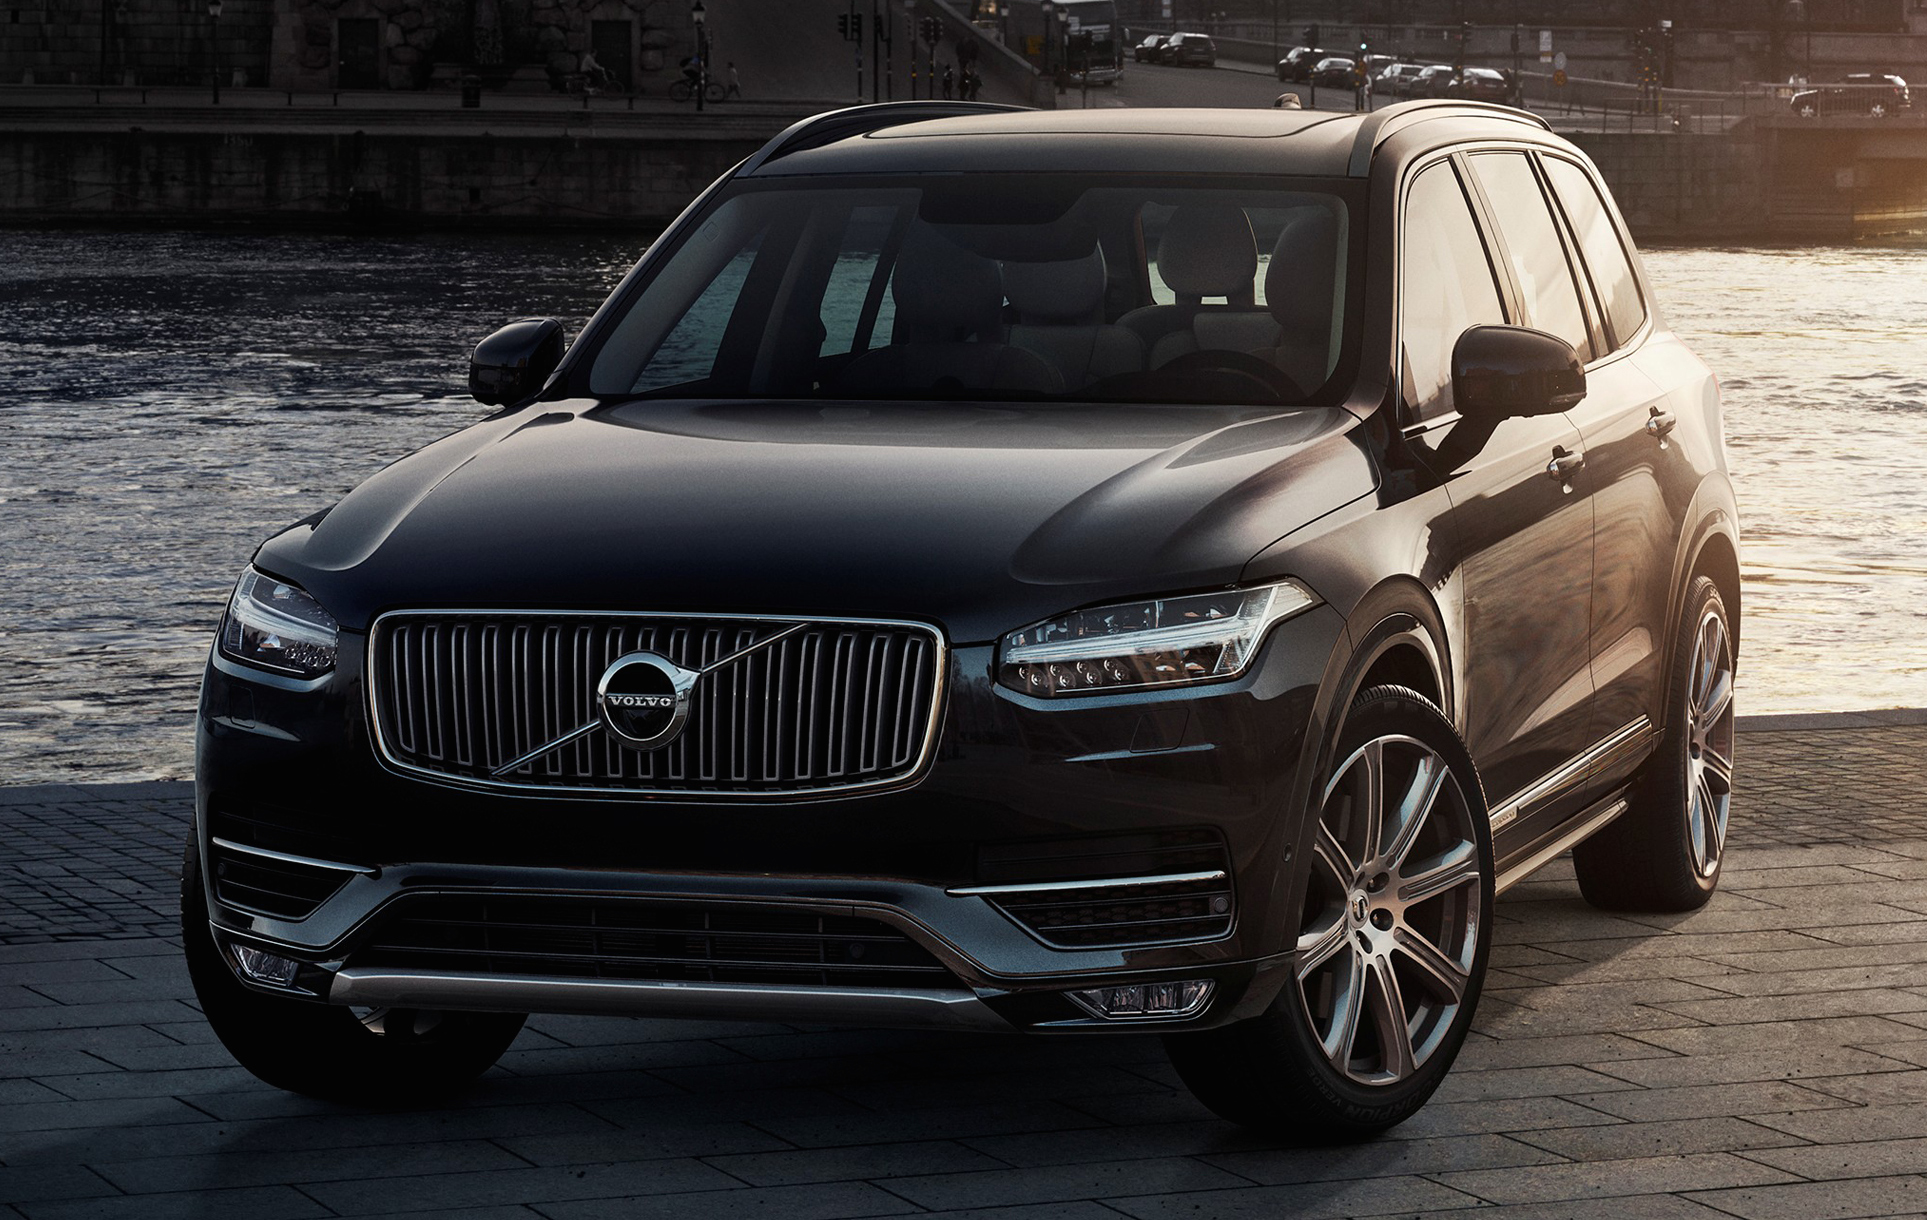 2015 Volvo Xc90 First Edition Limited Run Of 1 927